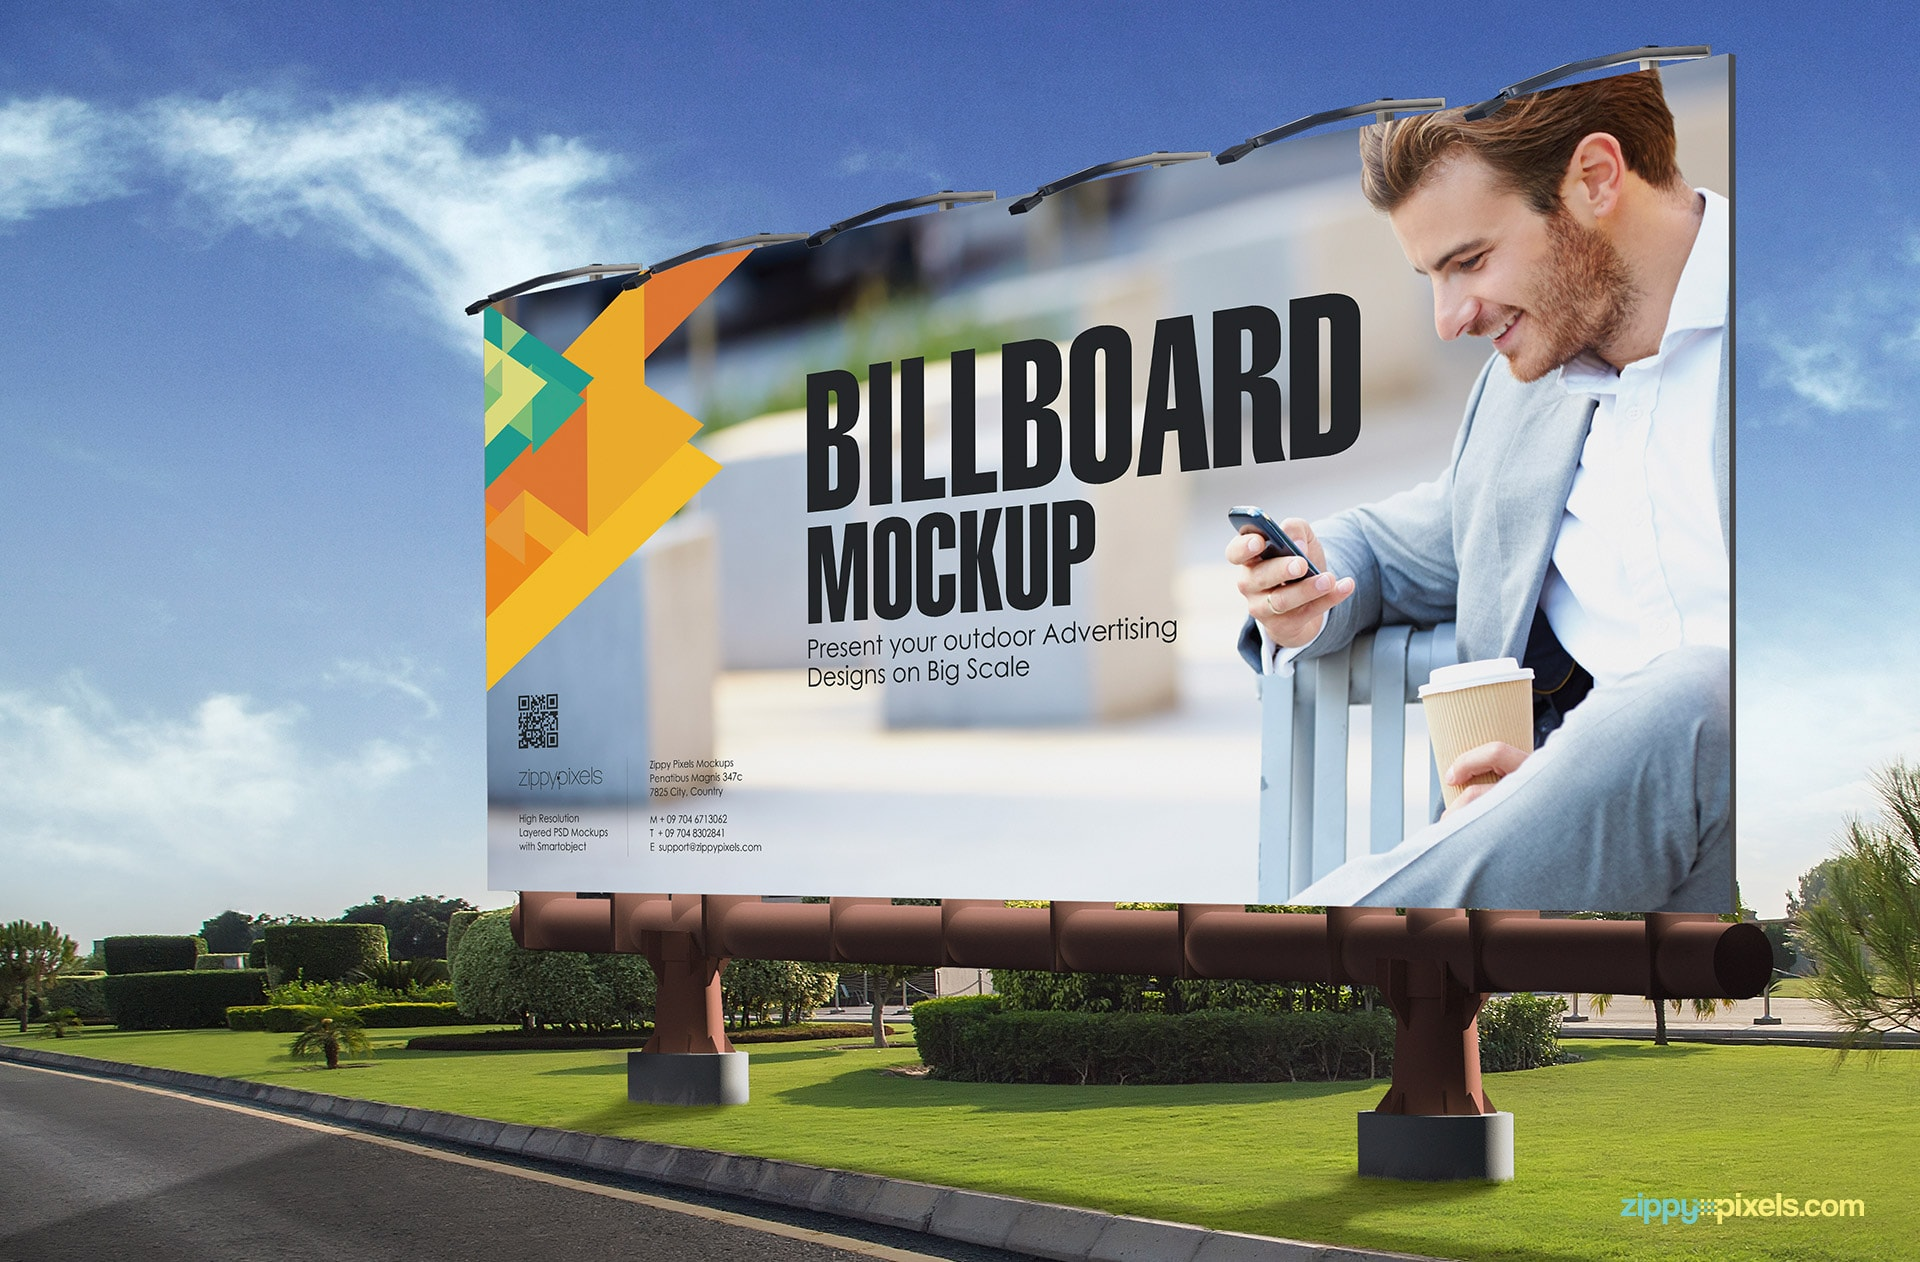 Present your hoarding mockups on a larger scale.